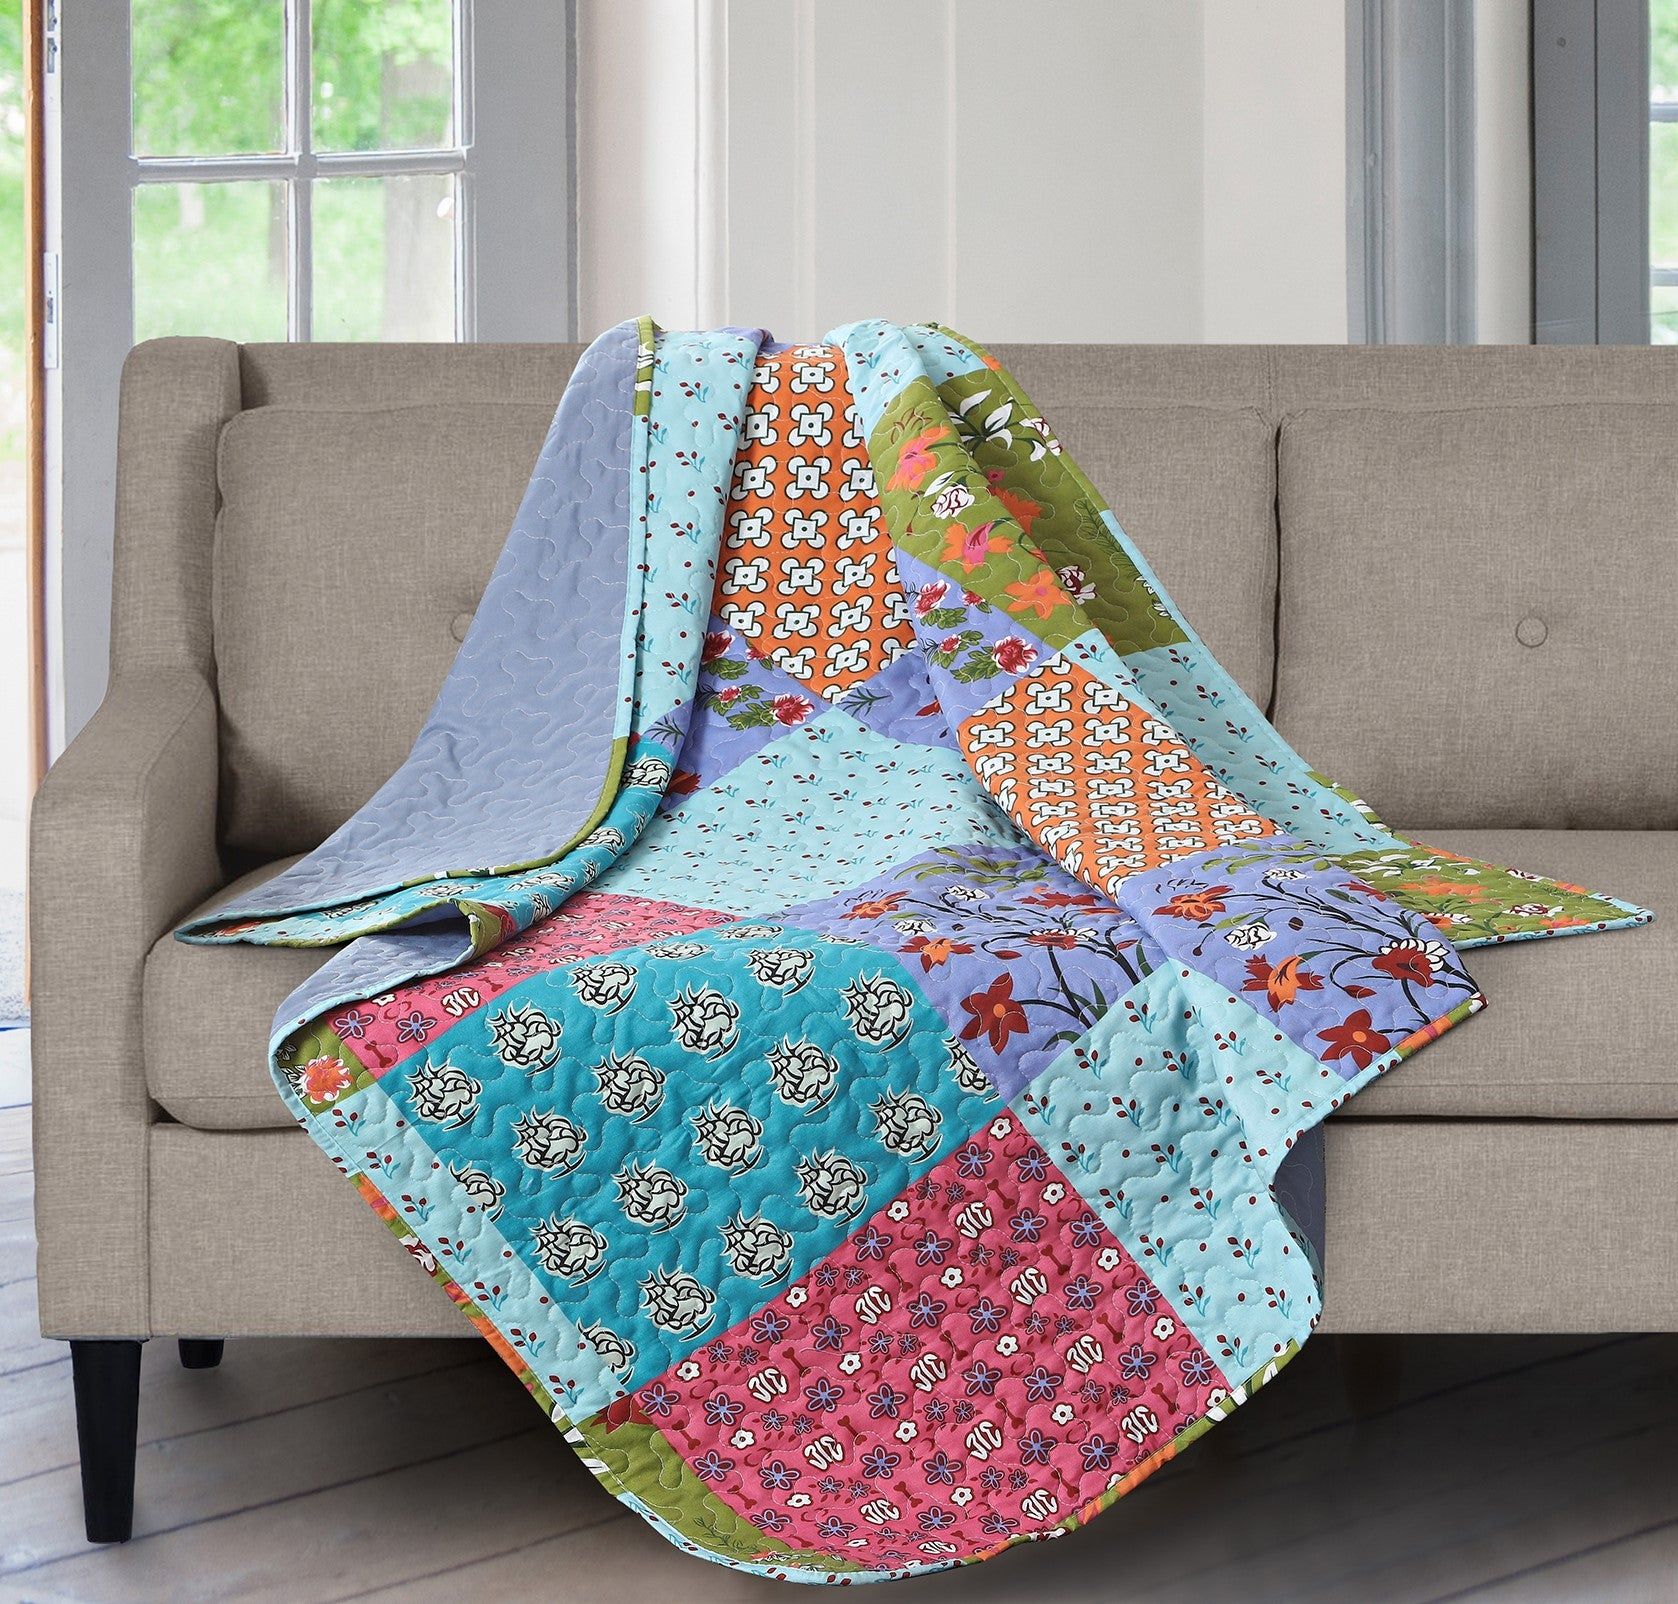 Printed Throw Blanket